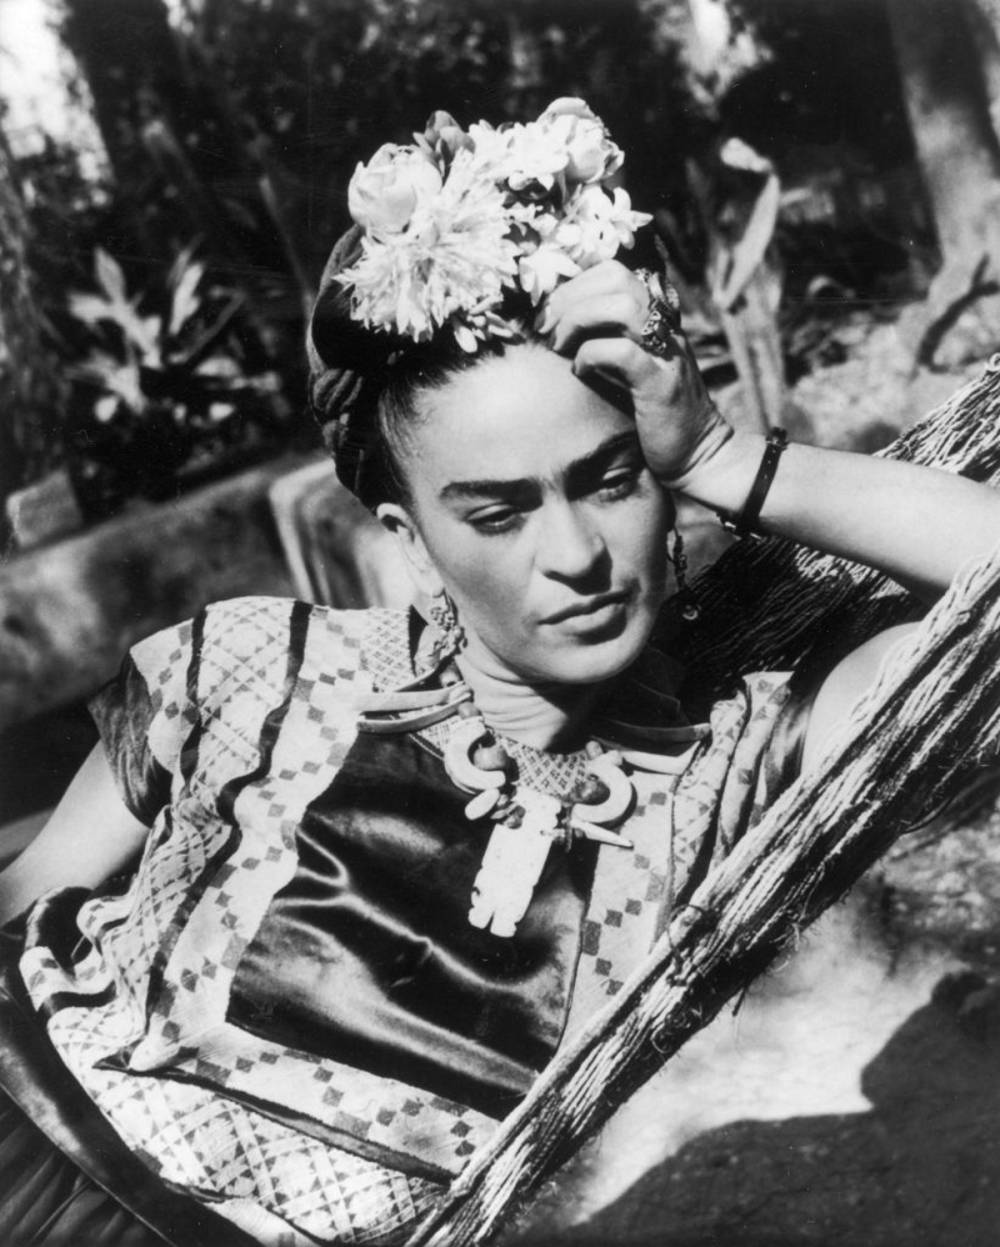 Frida Kahlo (Photo by Hulton Archive/Getty Images)